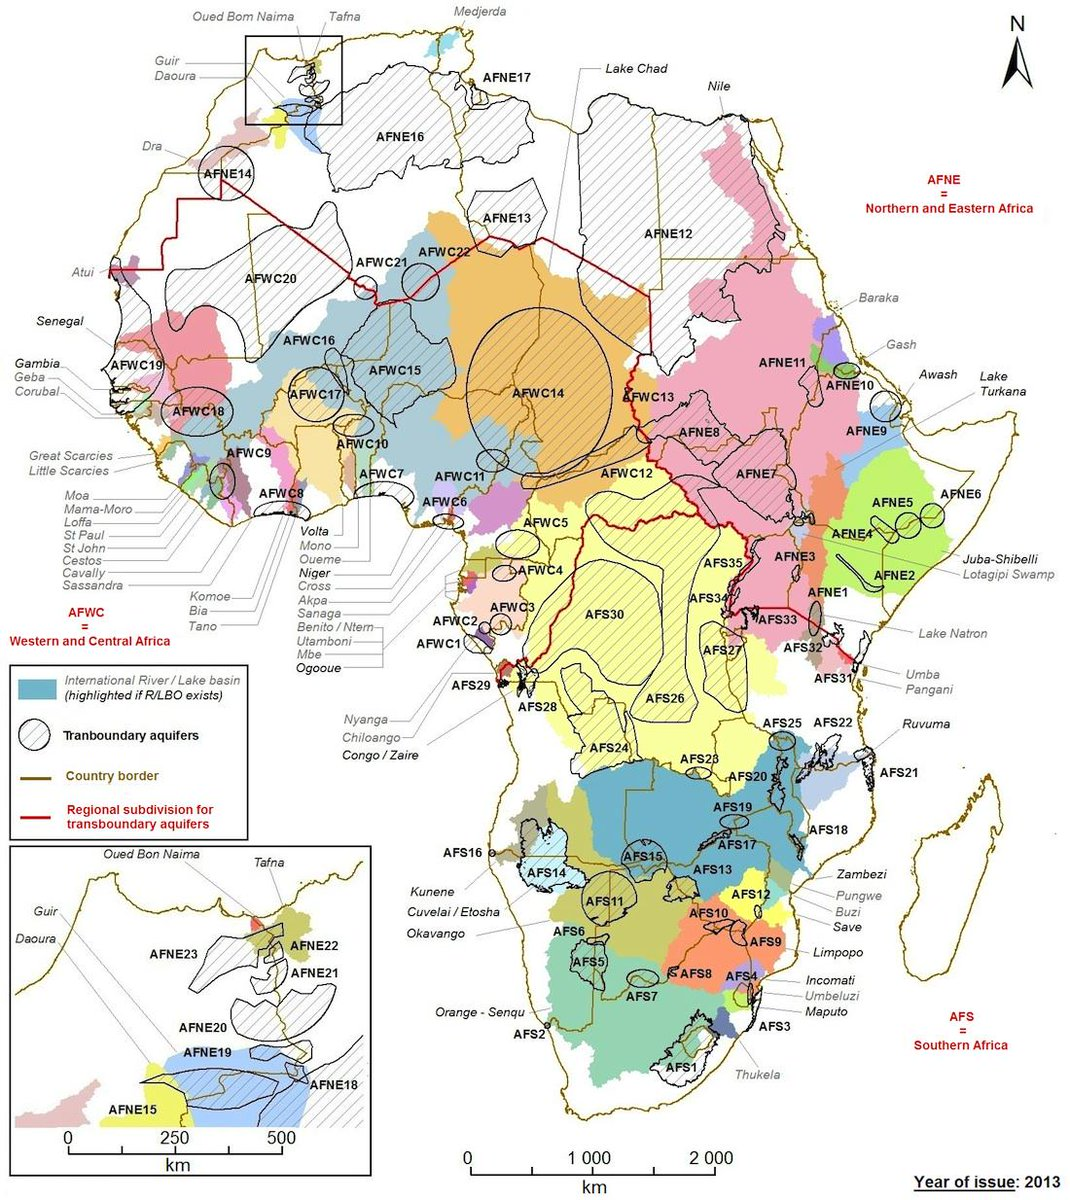 Who doesn't love maps? Transboundary aquifers in #Africa help with water policy decisions http://t.co/ByAUEhbHSN http://t.co/3UICrMqRqh